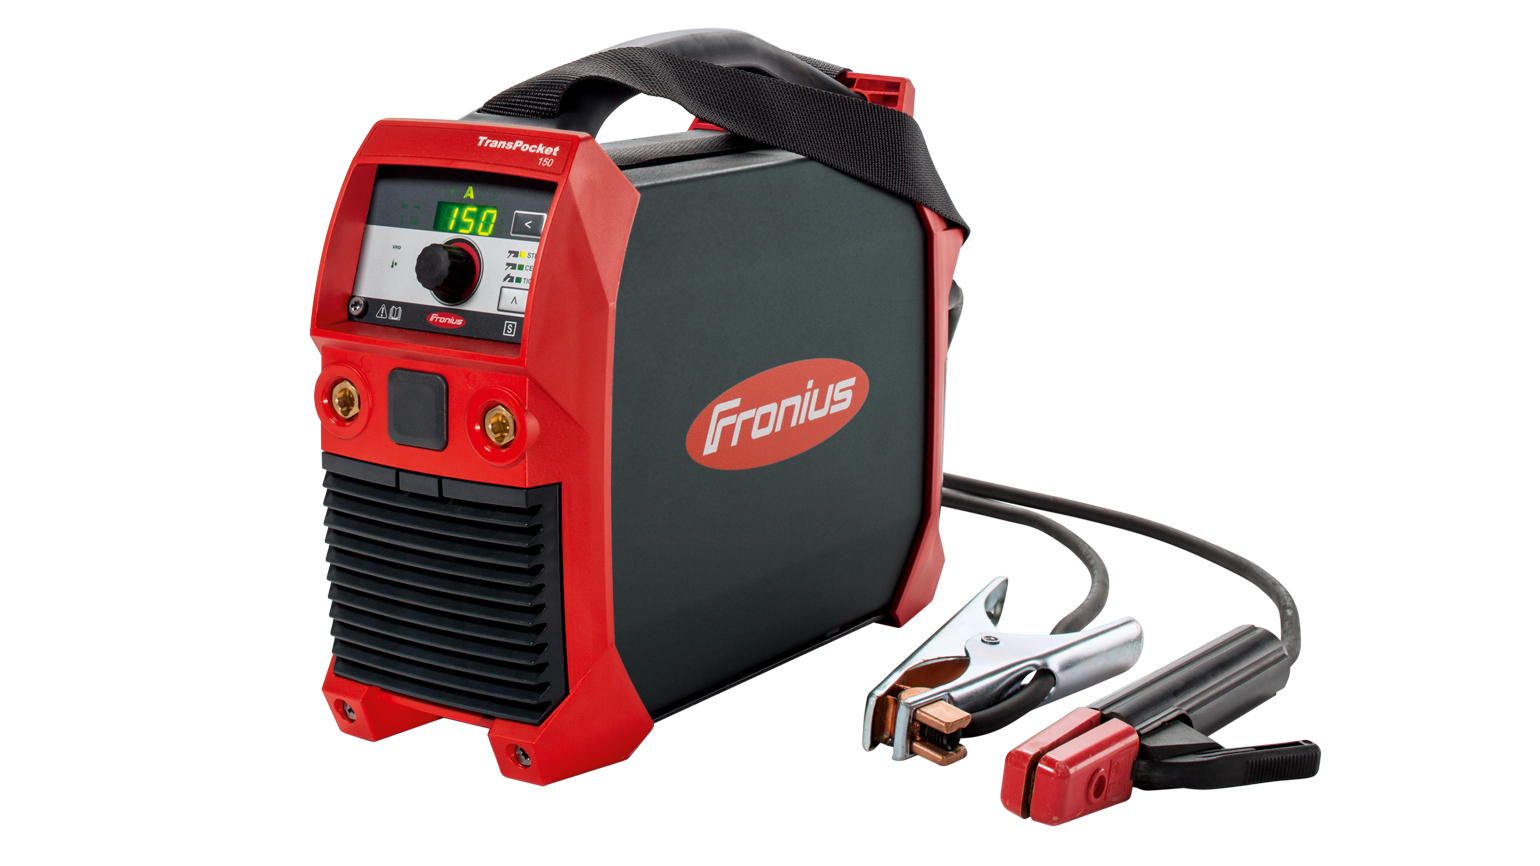 Transpocket 150 Arc Welding Diagram Homemade Inverter Welder The New Generation Of 180 Devices Brings A High Degree Flexibility Integrated Pfc Power Factor Correction Technology Supports